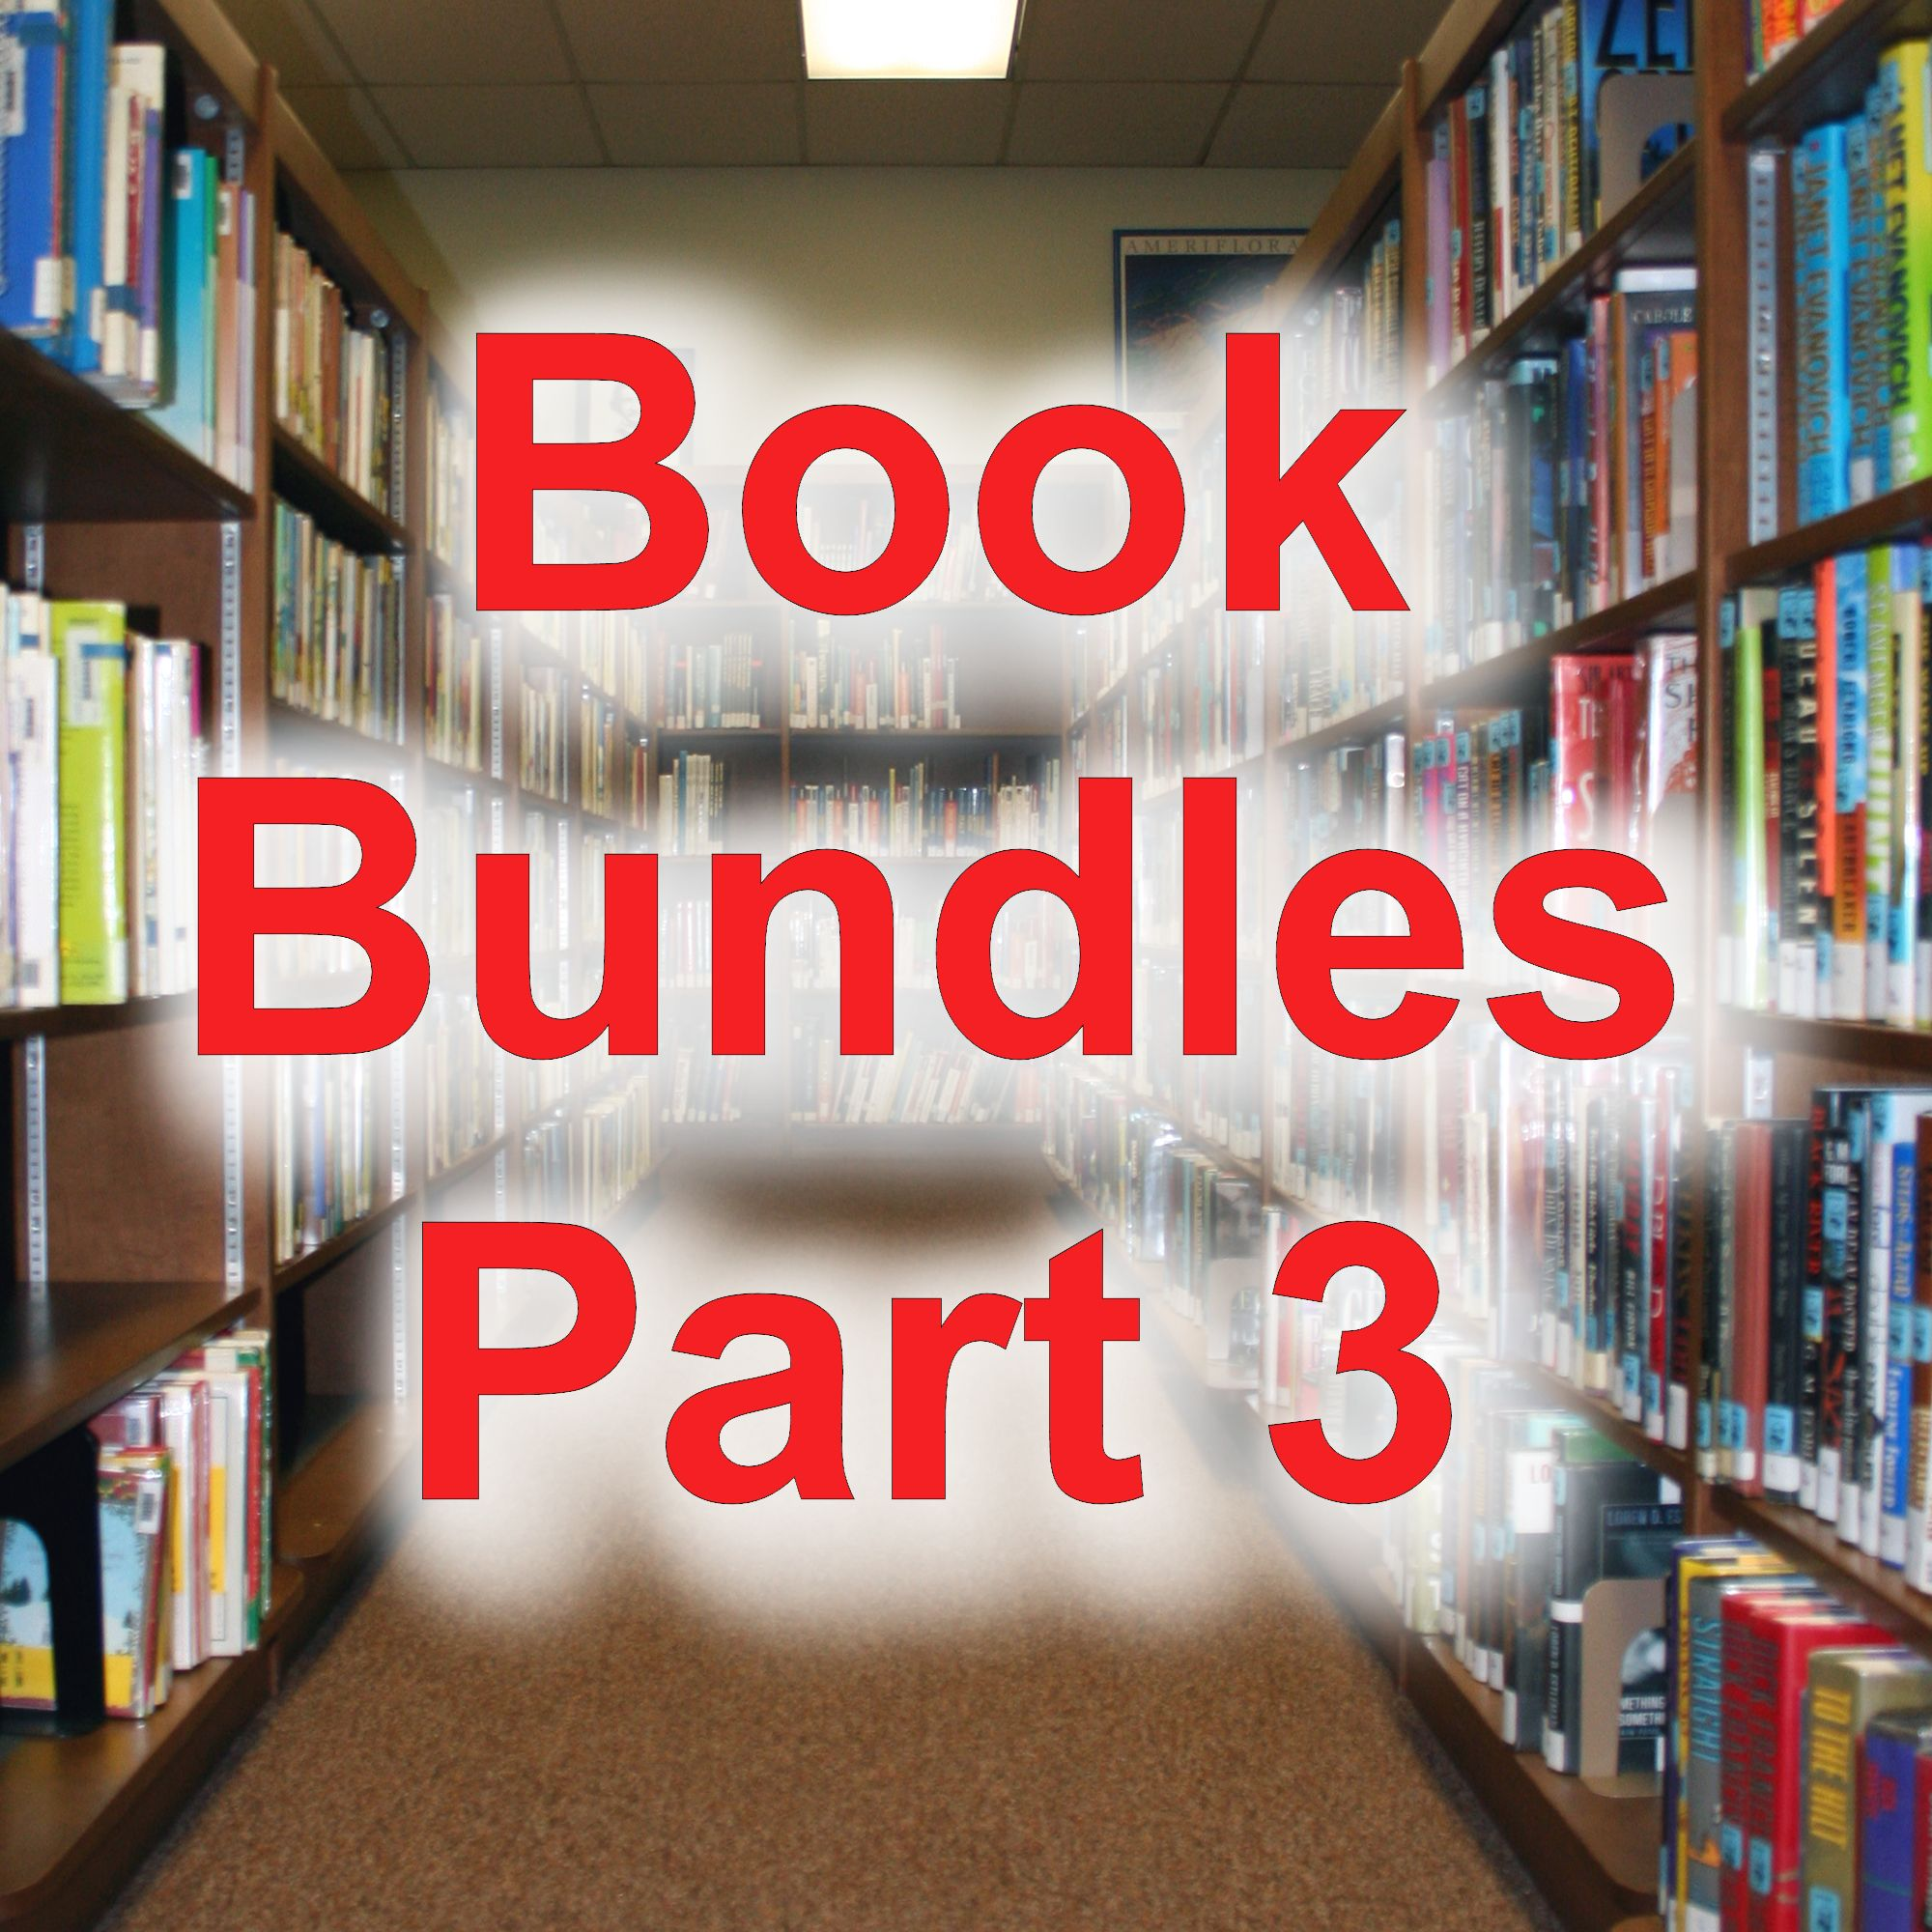 Book Bundles Part 3